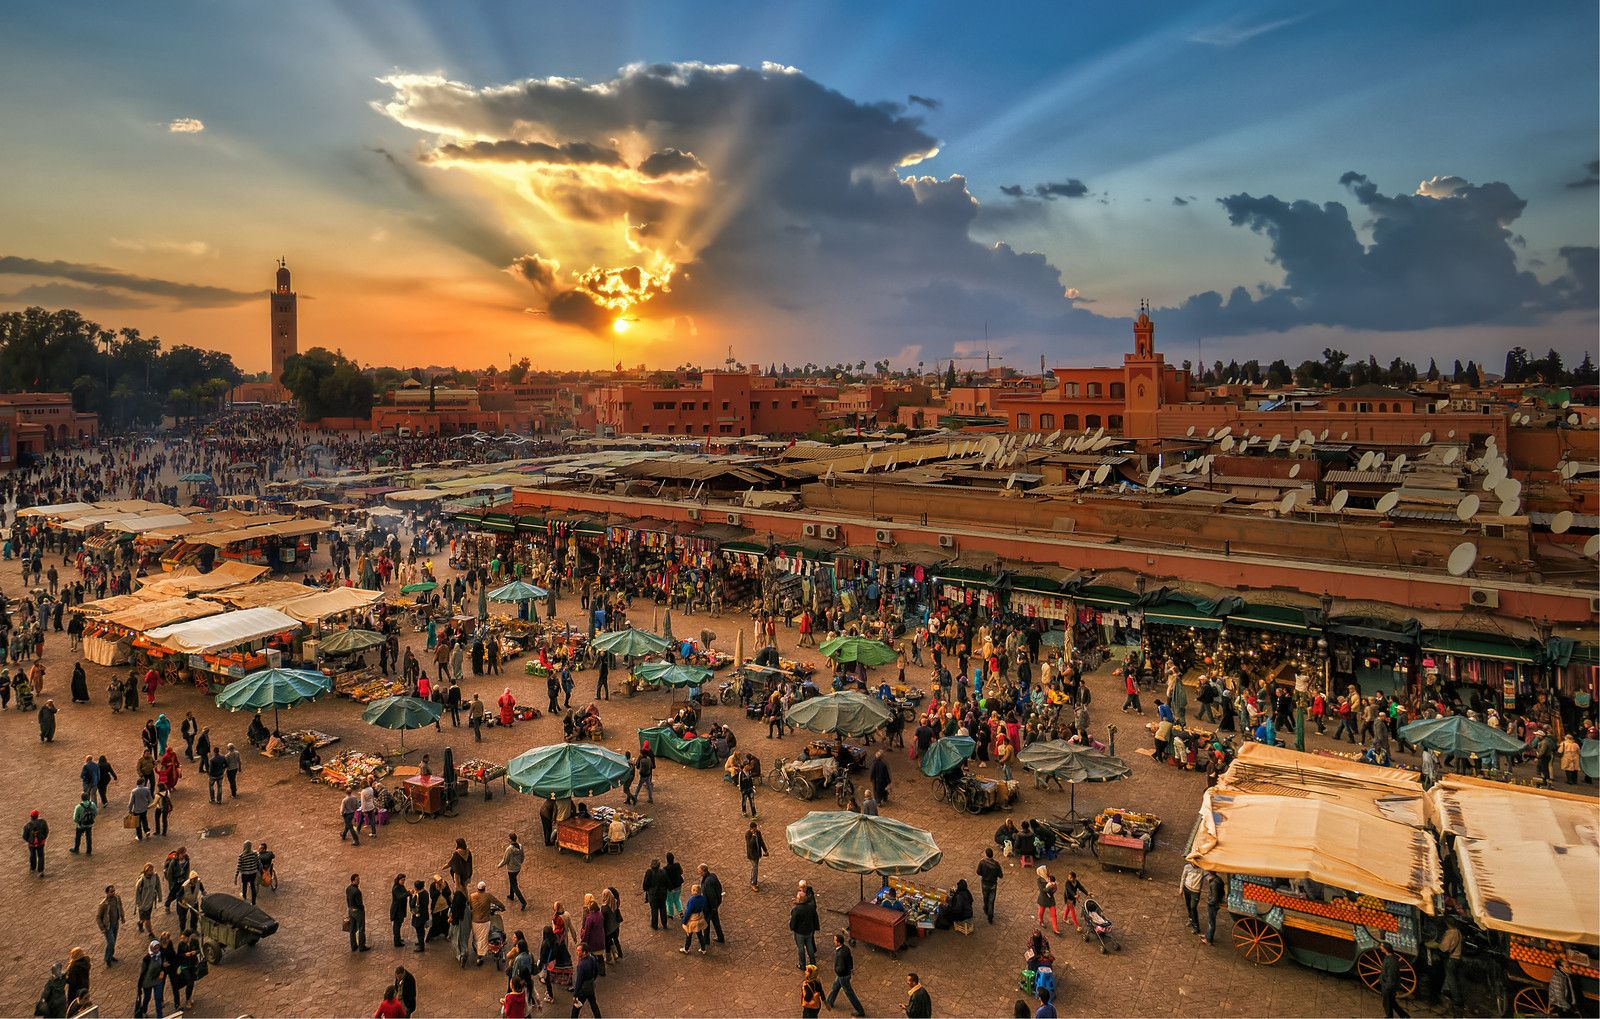 Desert Camps from Marrakech are tours to the desert from the red city, the journey is extraordinary taking you along to Ouerzazate and Dades Valley all the way to the heart of the desert.  http://luxury-tours-morocco.com/merzouga-desert-camp.php